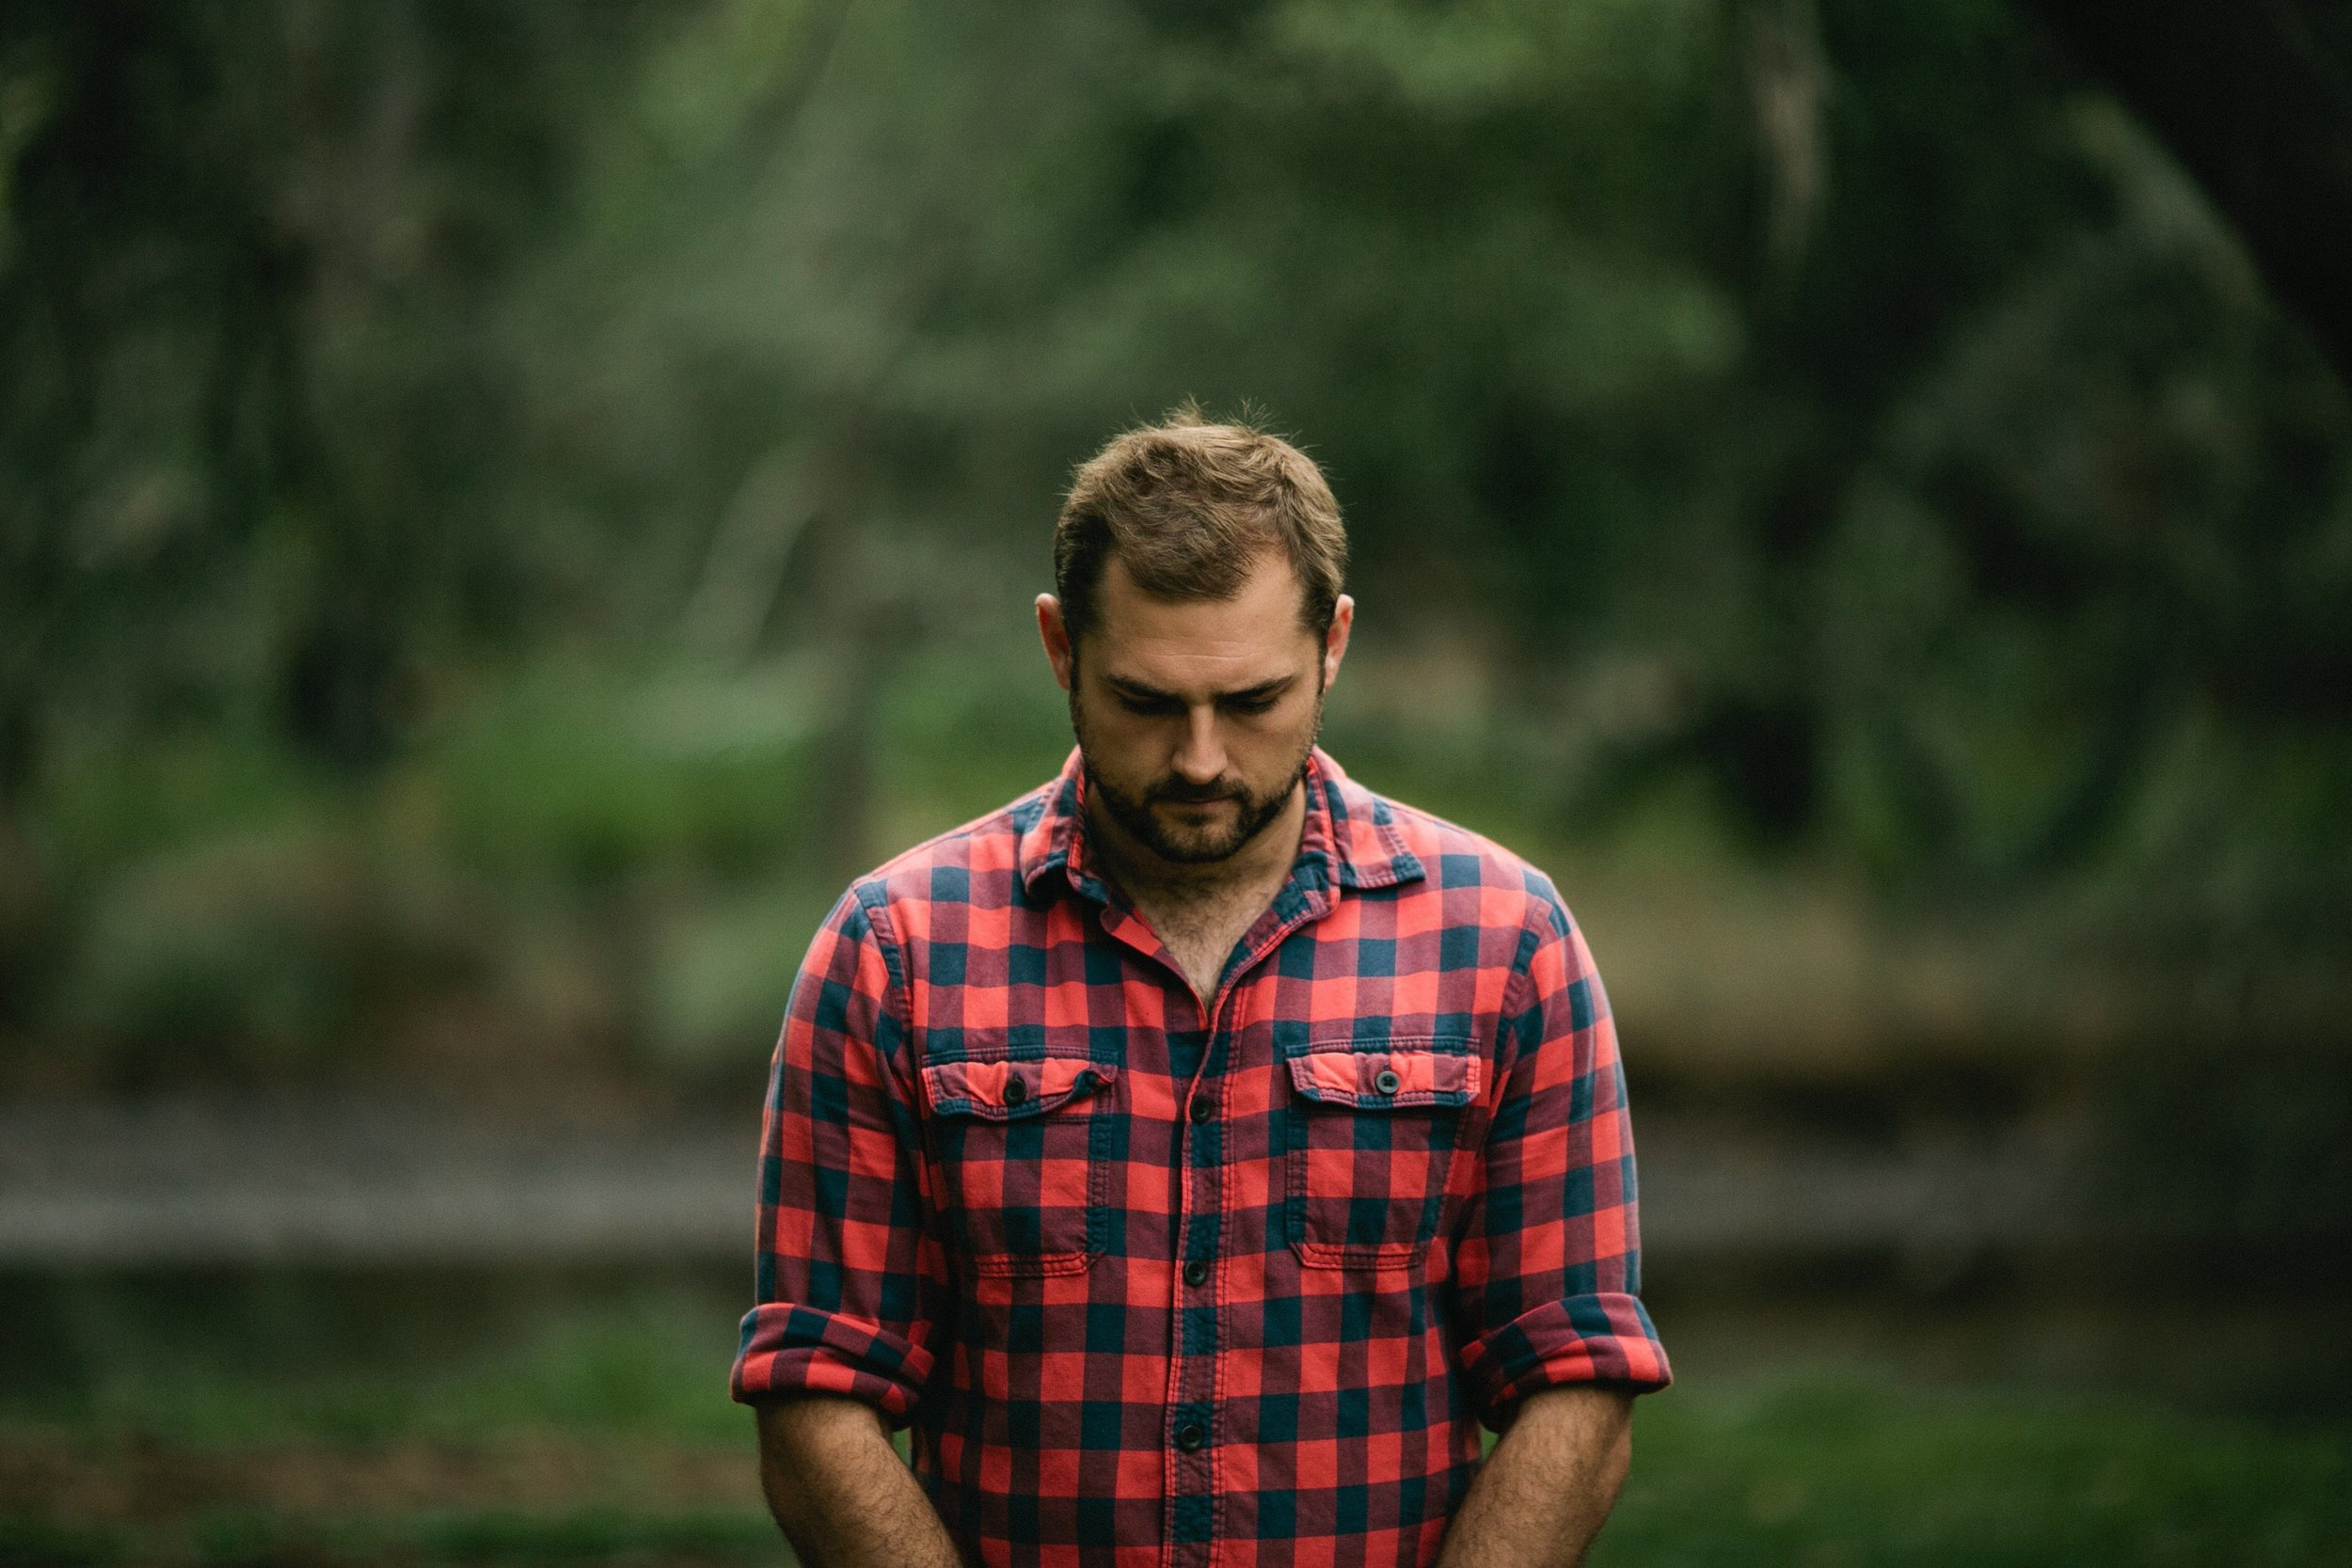 sensitive emotional bearded man with plaid shirt looking downward